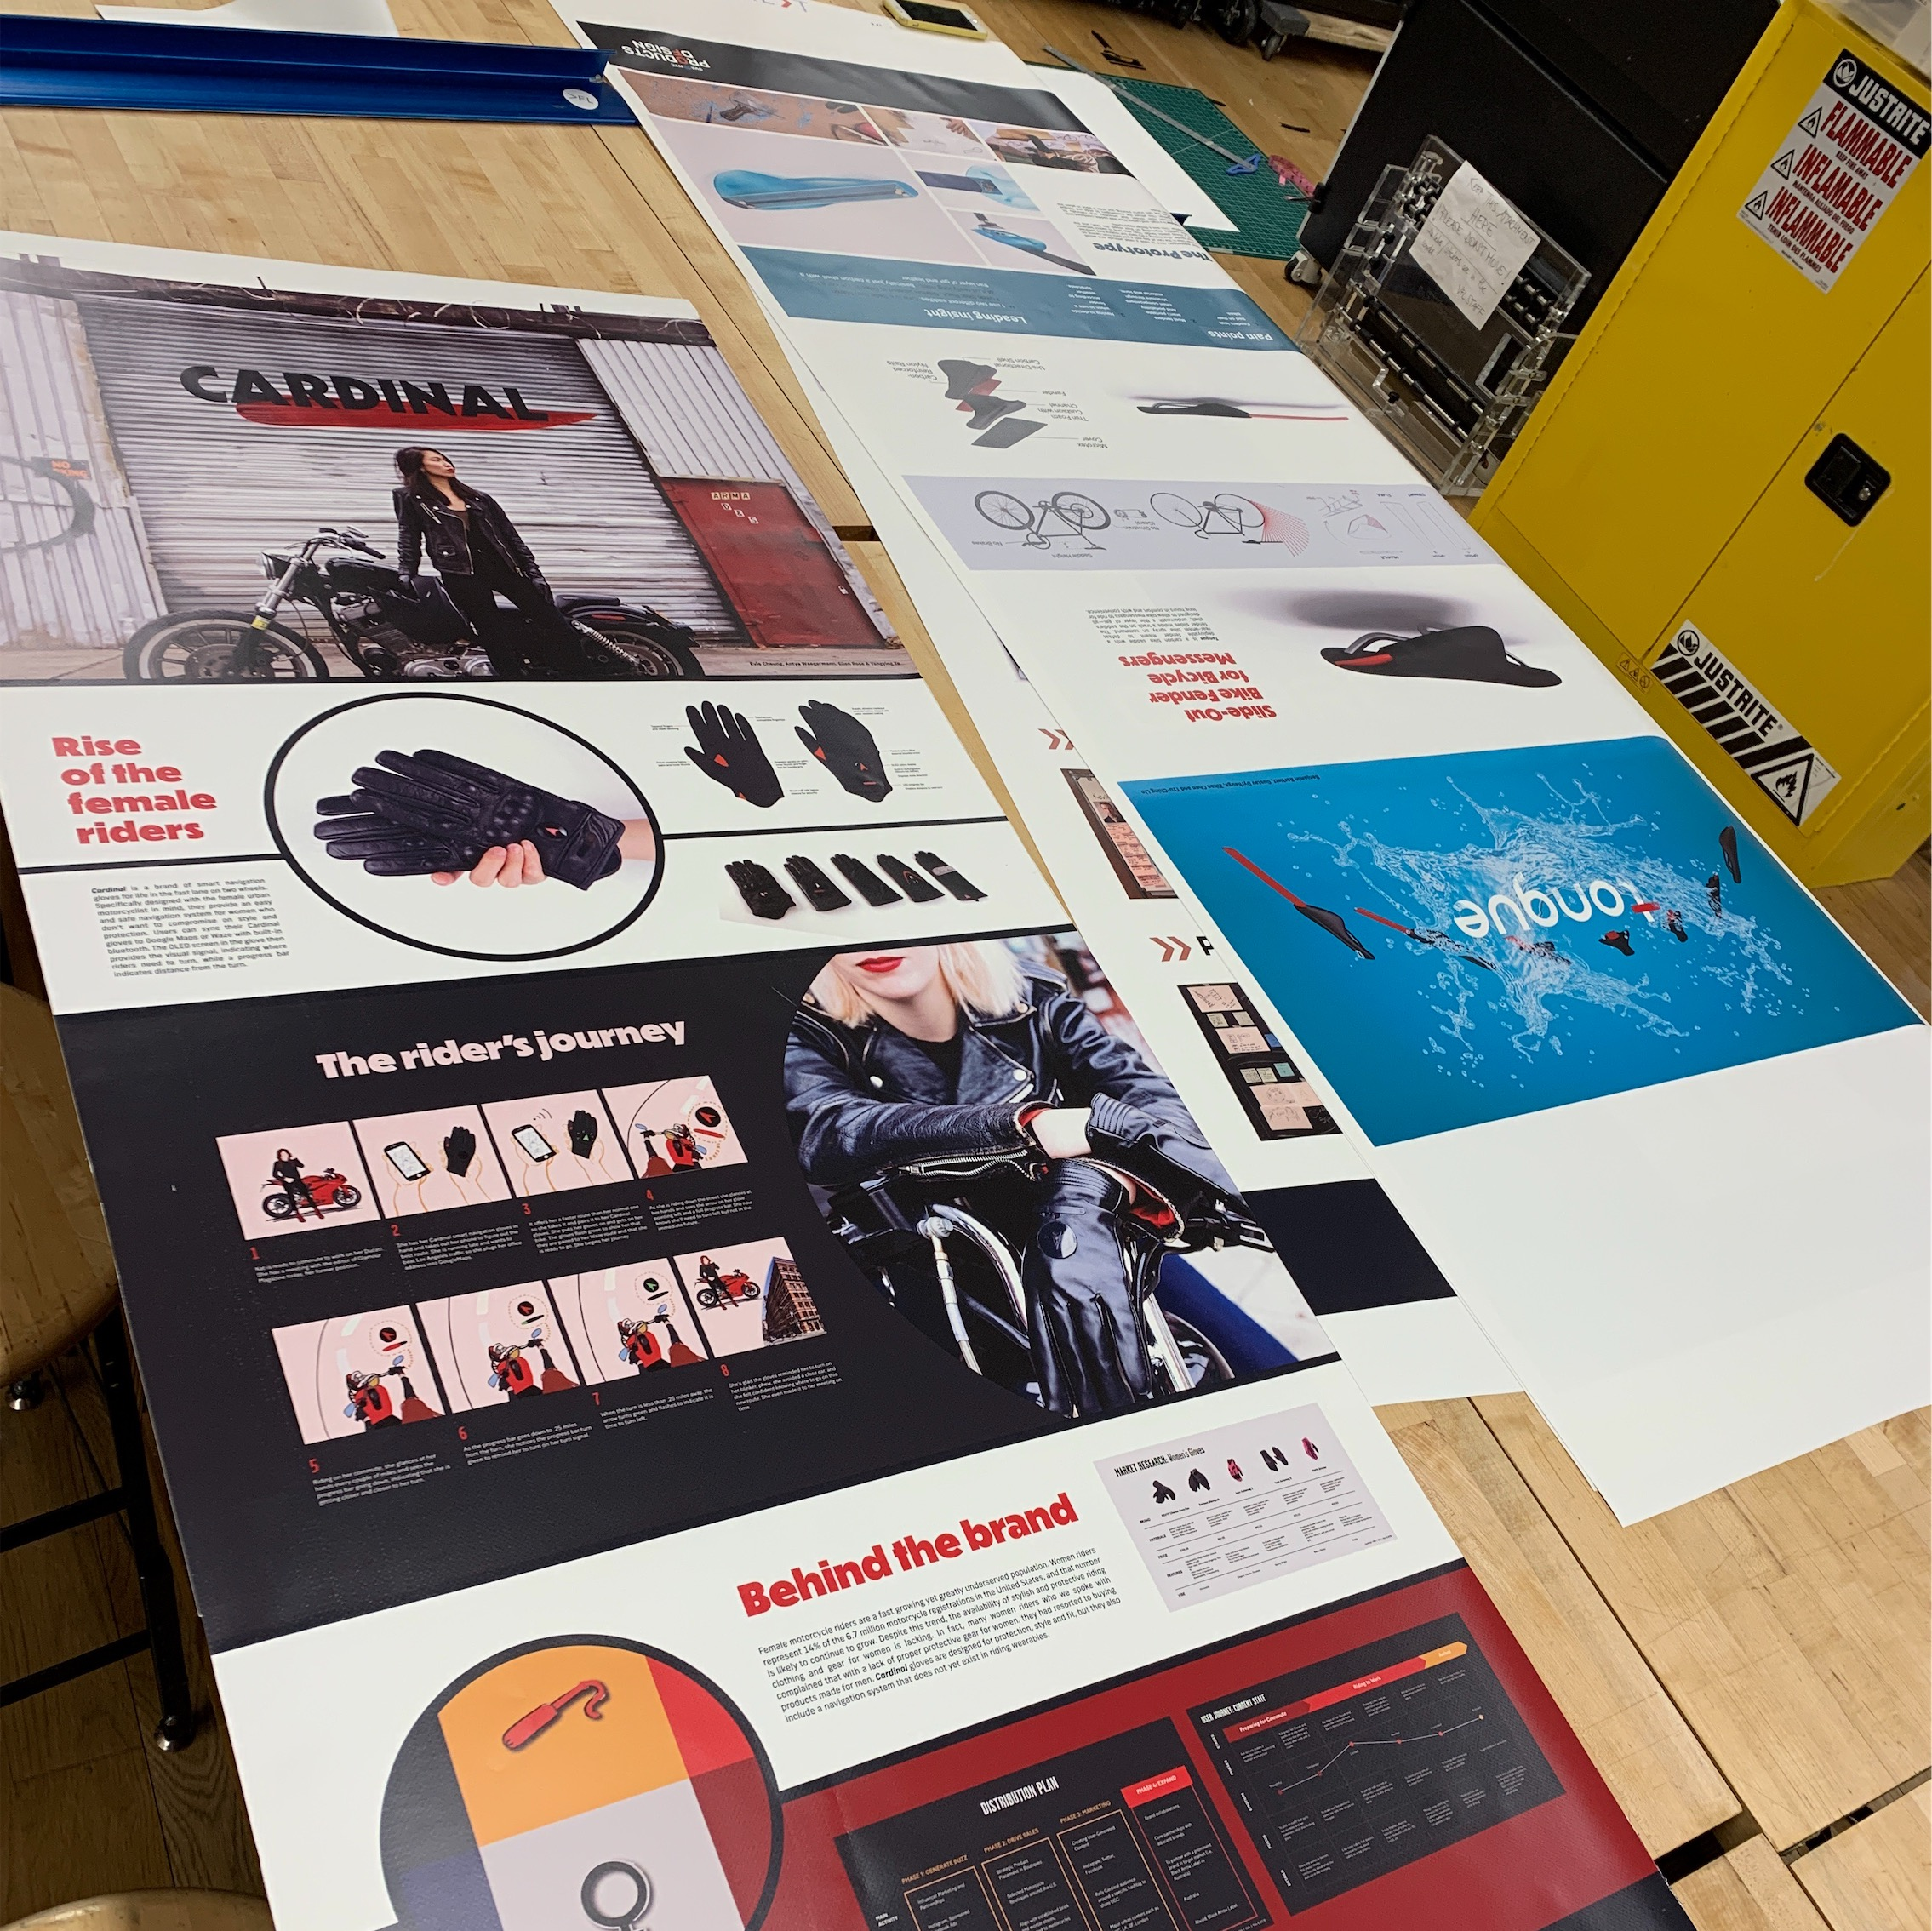 For the review, all first year students are printing large scale banners of digital projects they worked on in groups.